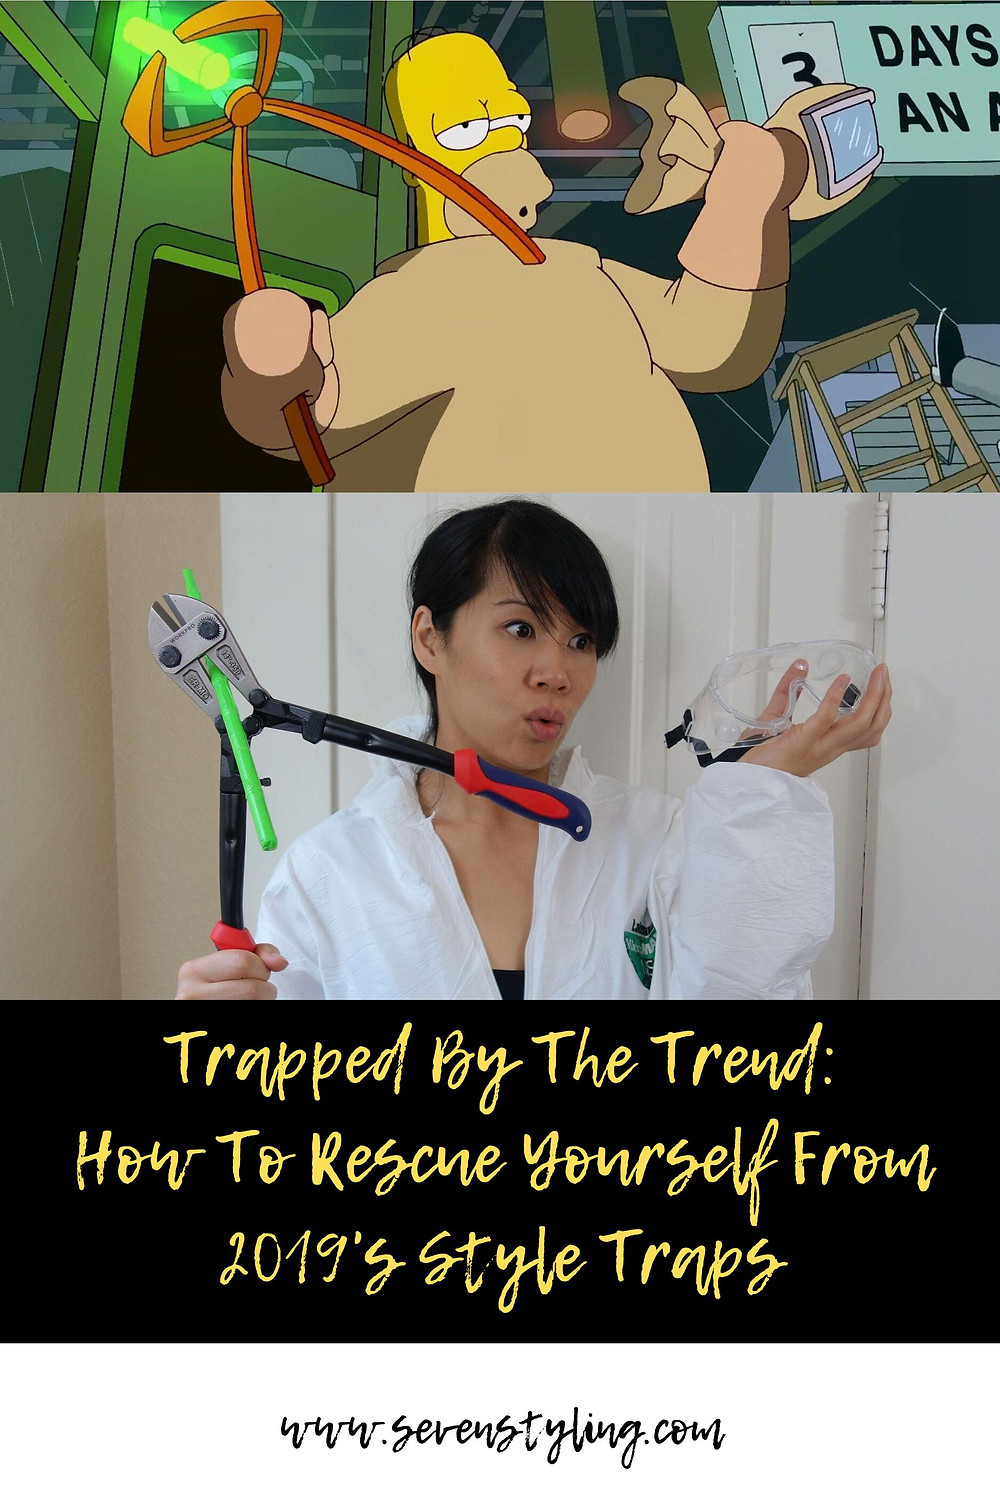 Trapped By The Trend: How To Rescue Yourself From 2019's Style Traps